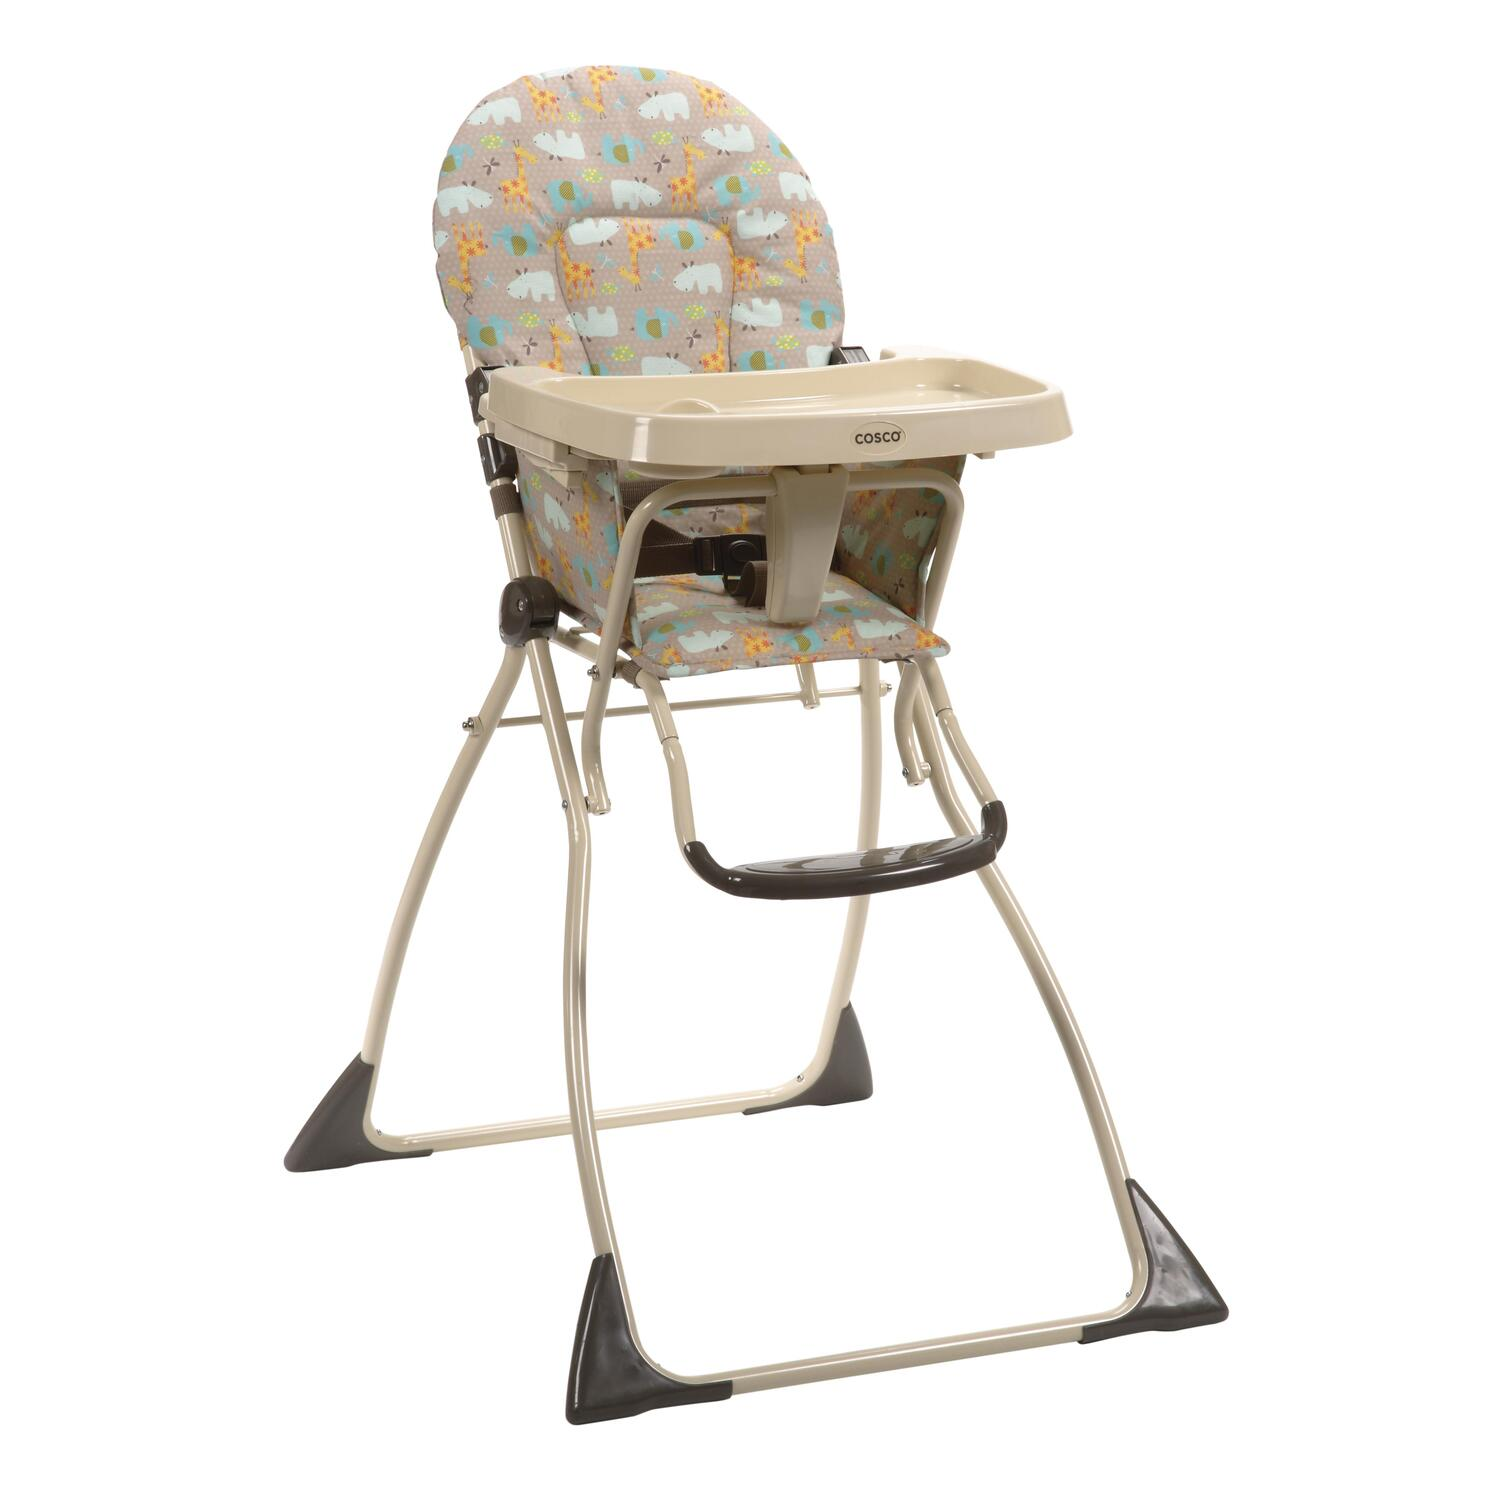 Cosco Cosco 174 Flat Fold High Chair Zambia By Oj Commerce